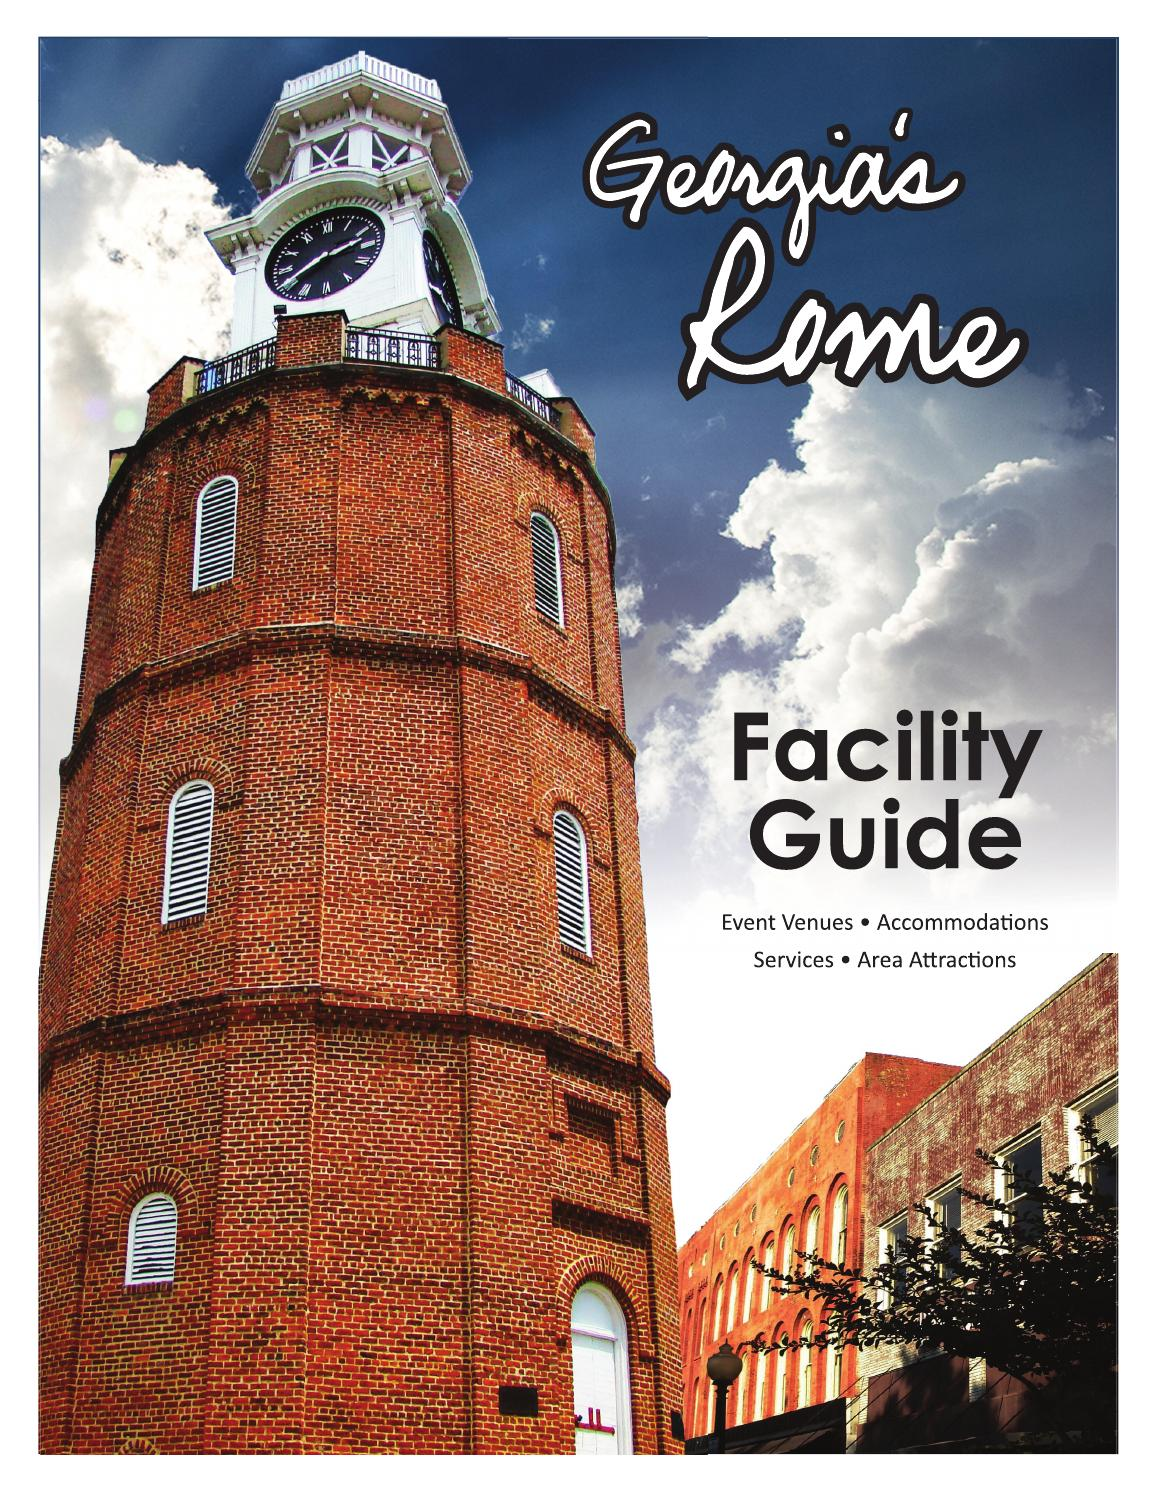 Georgia S Rome Facility Guide By Greater Rome Convention